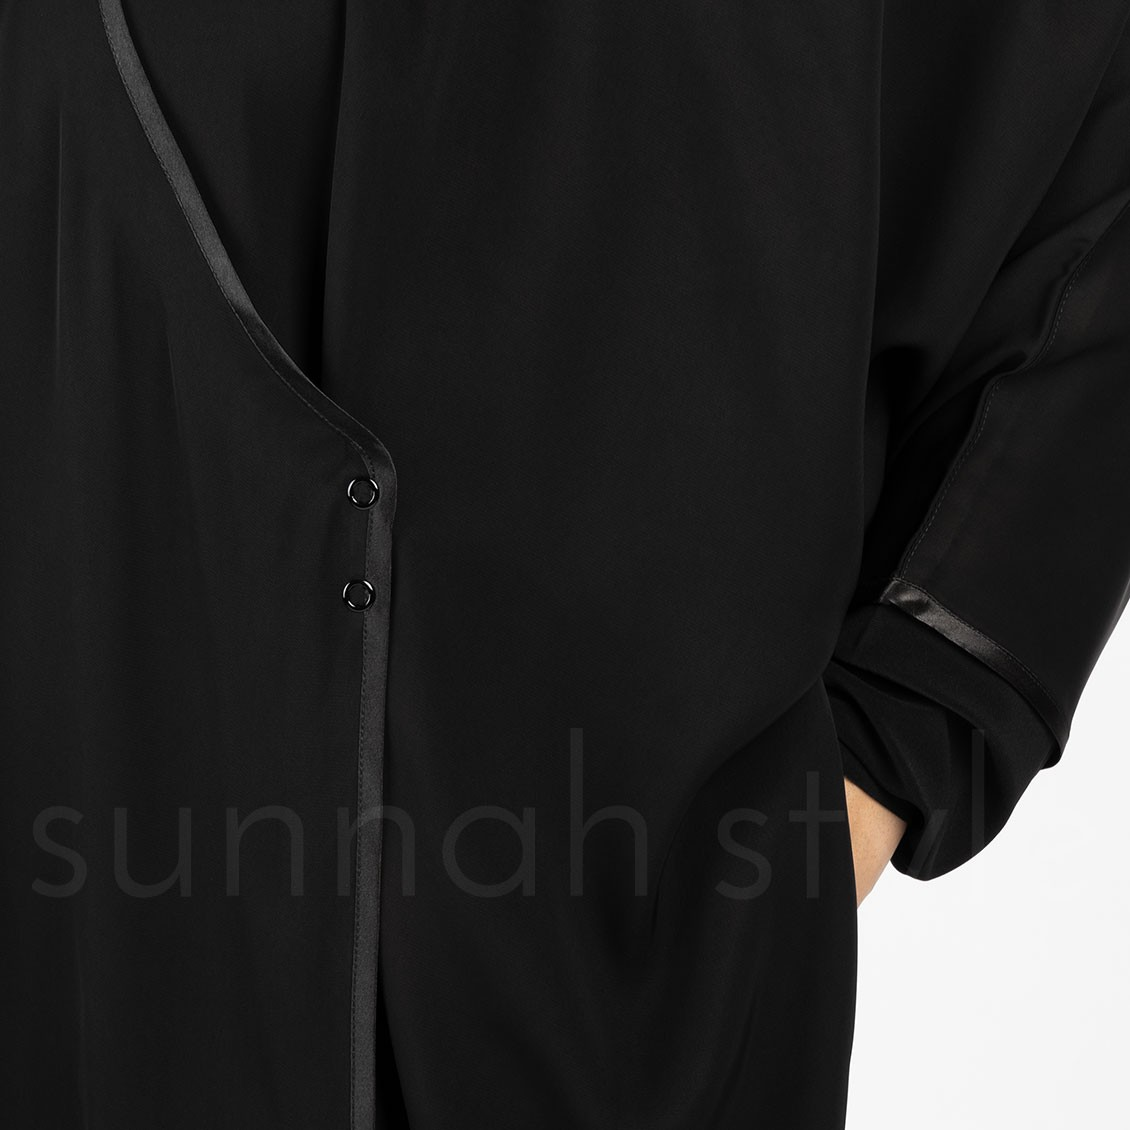 Sunnah Style Satin Trimmed Crossover Jilbab Black